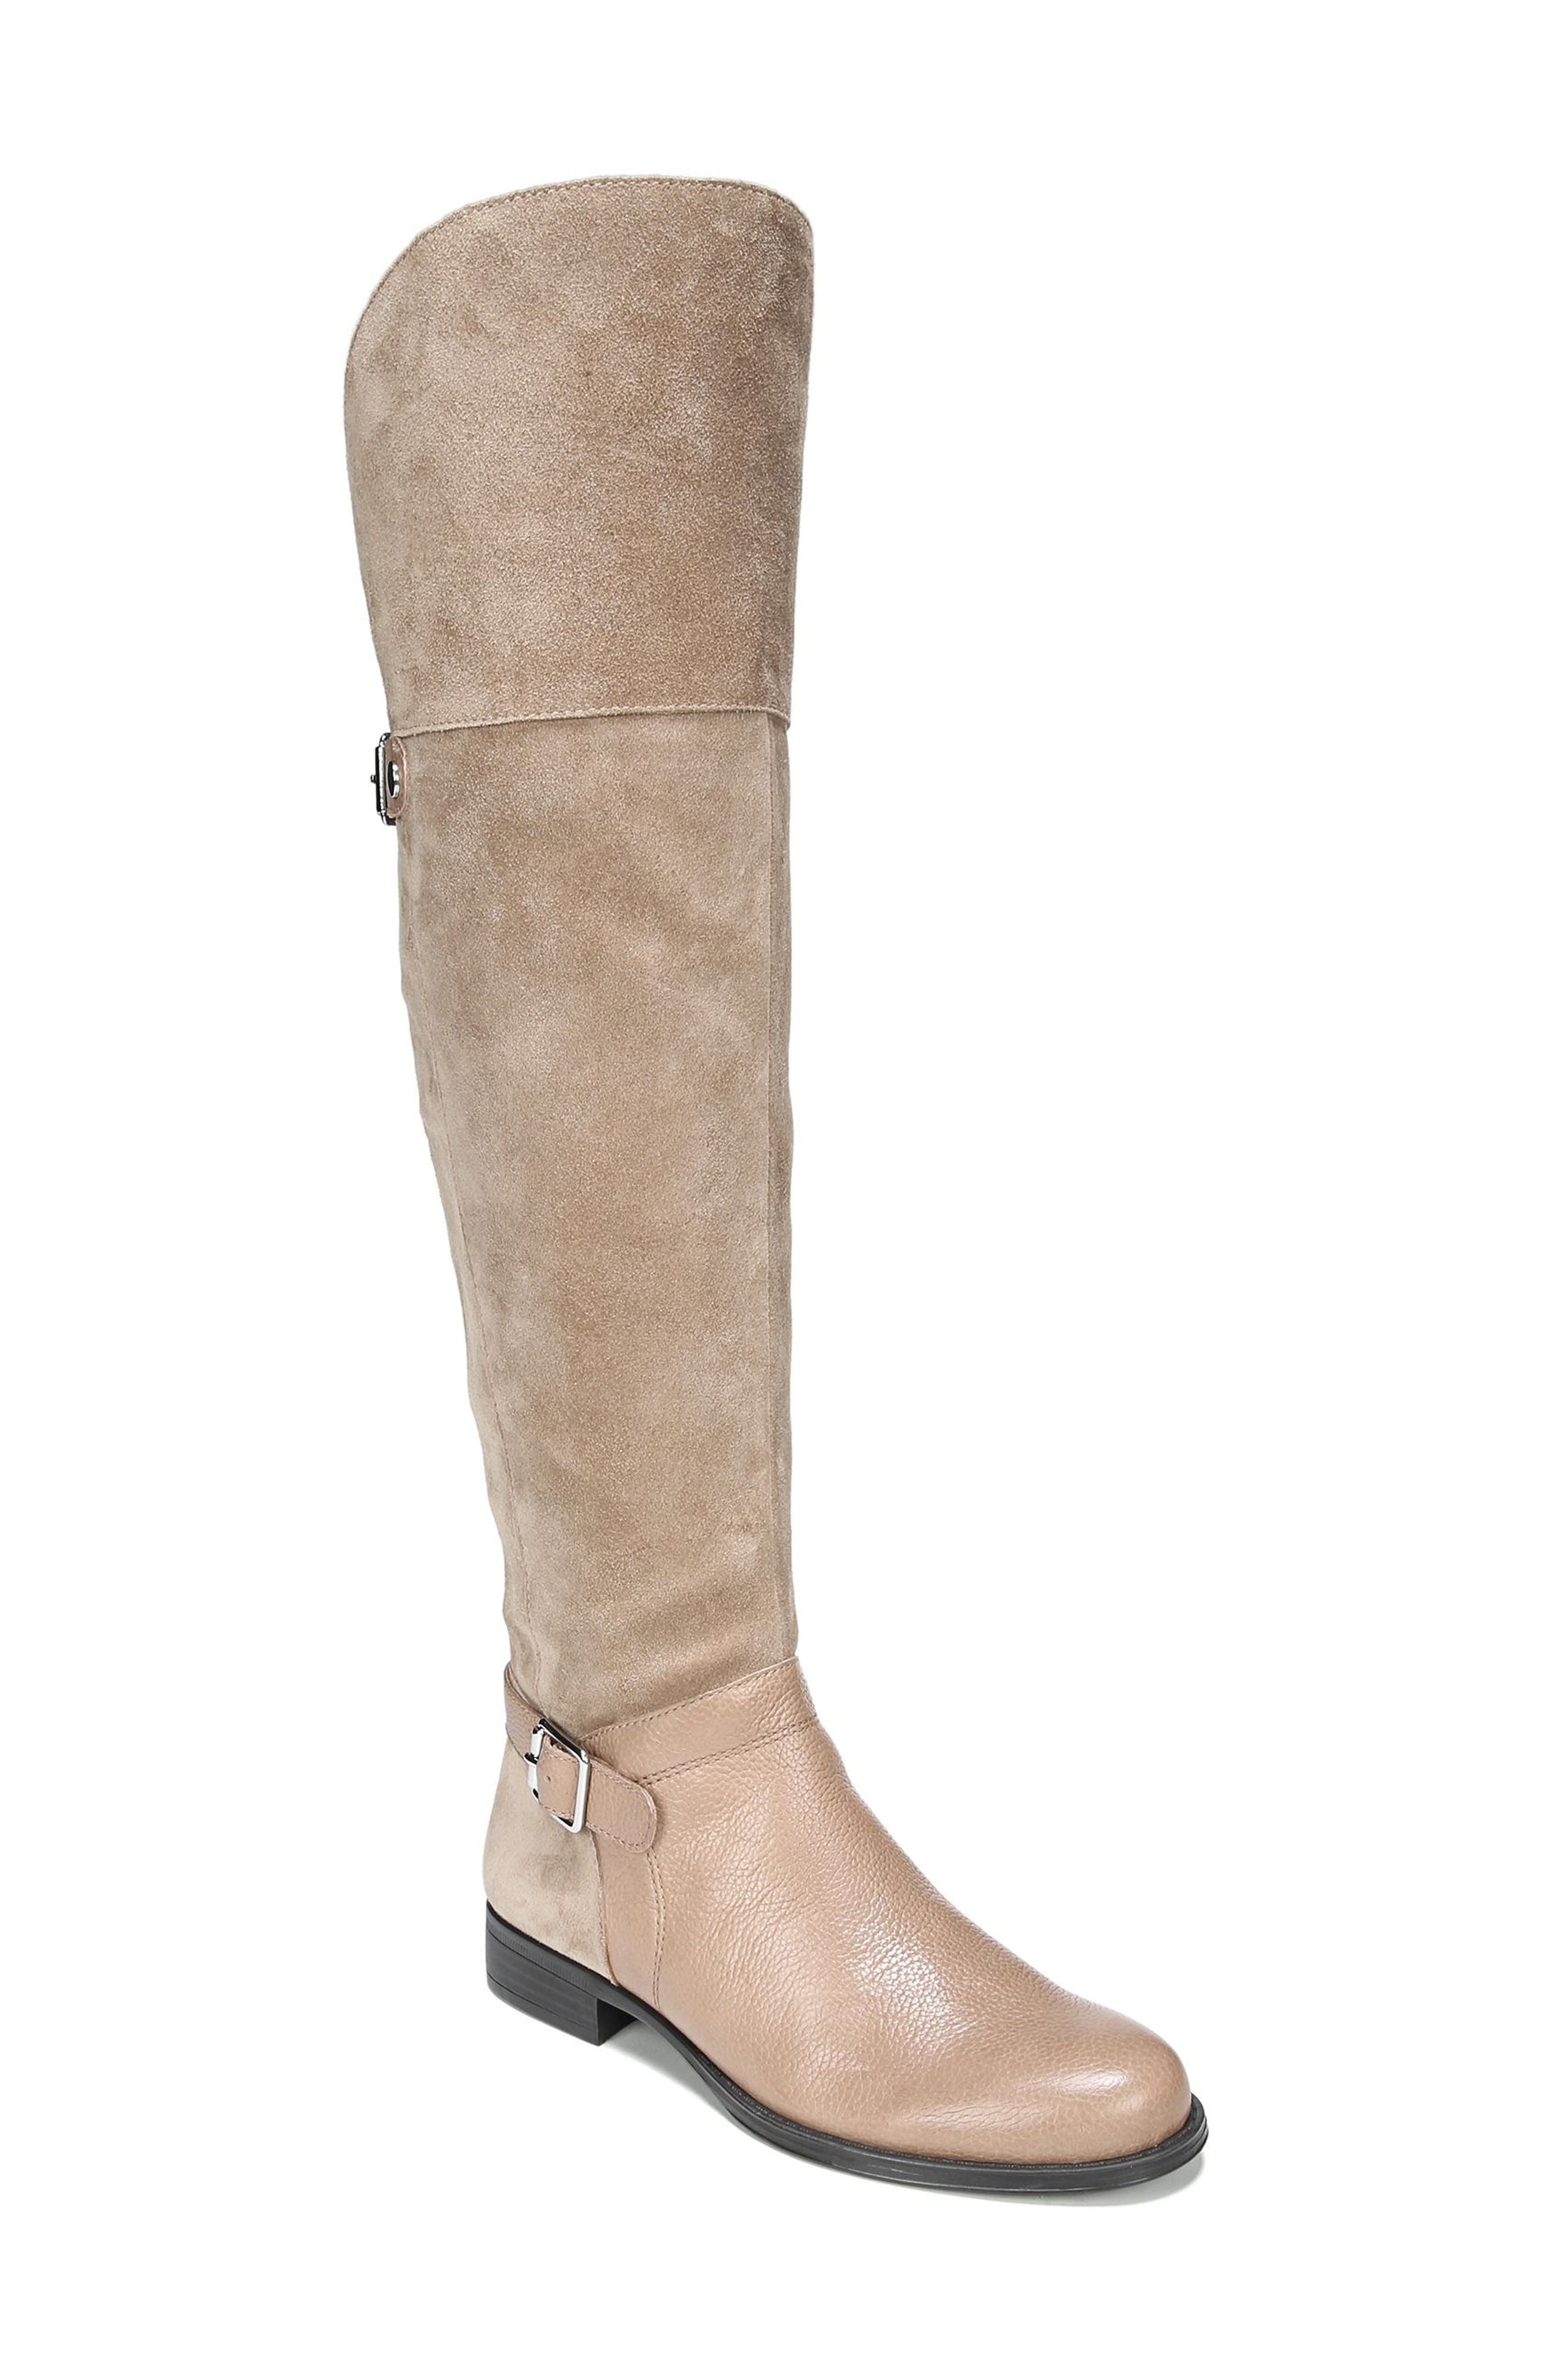 January Over the Knee High Boot,                             Main thumbnail 1, color,                             Beige Leather